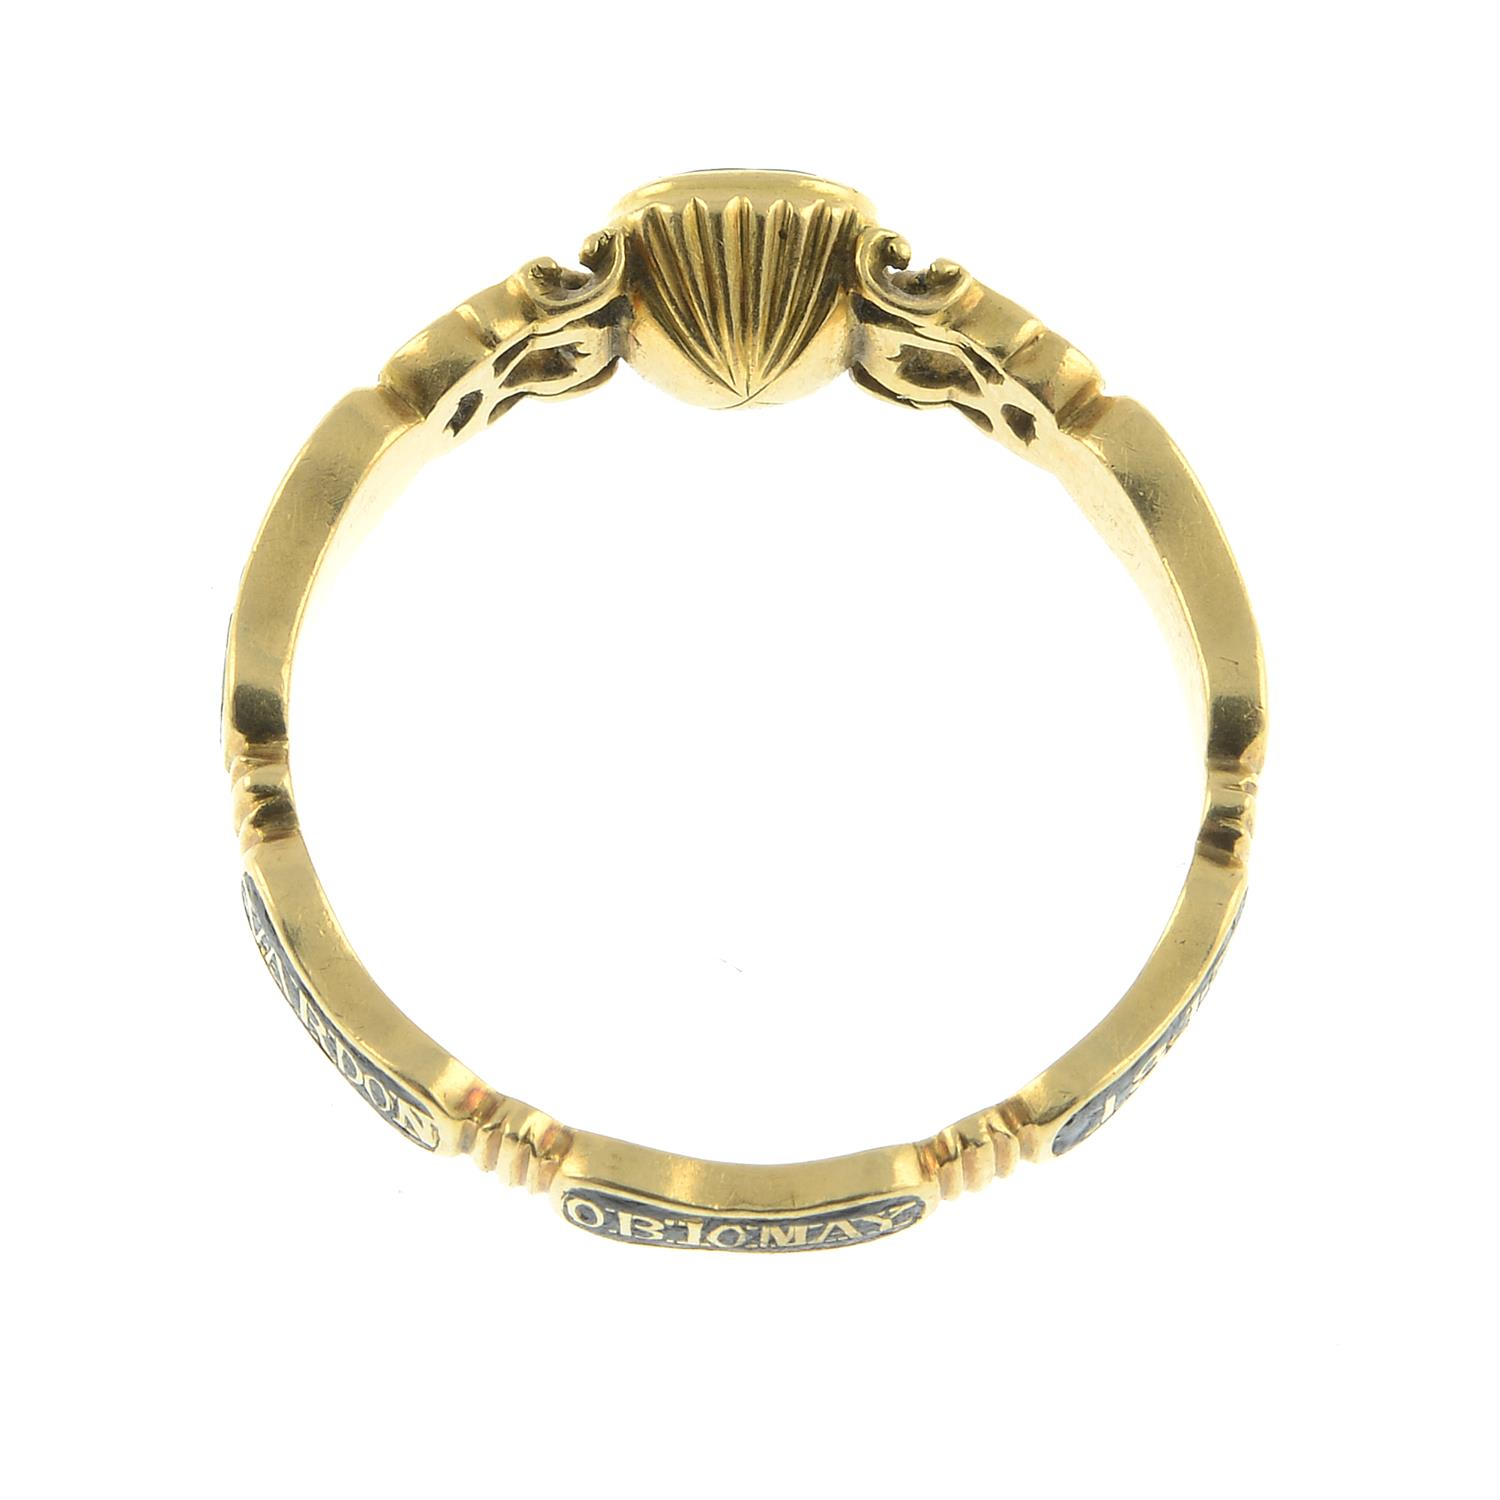 An early Victorian 18ct gold black enamel mourning ring, with pierced scrolling sides and woven - Image 6 of 7